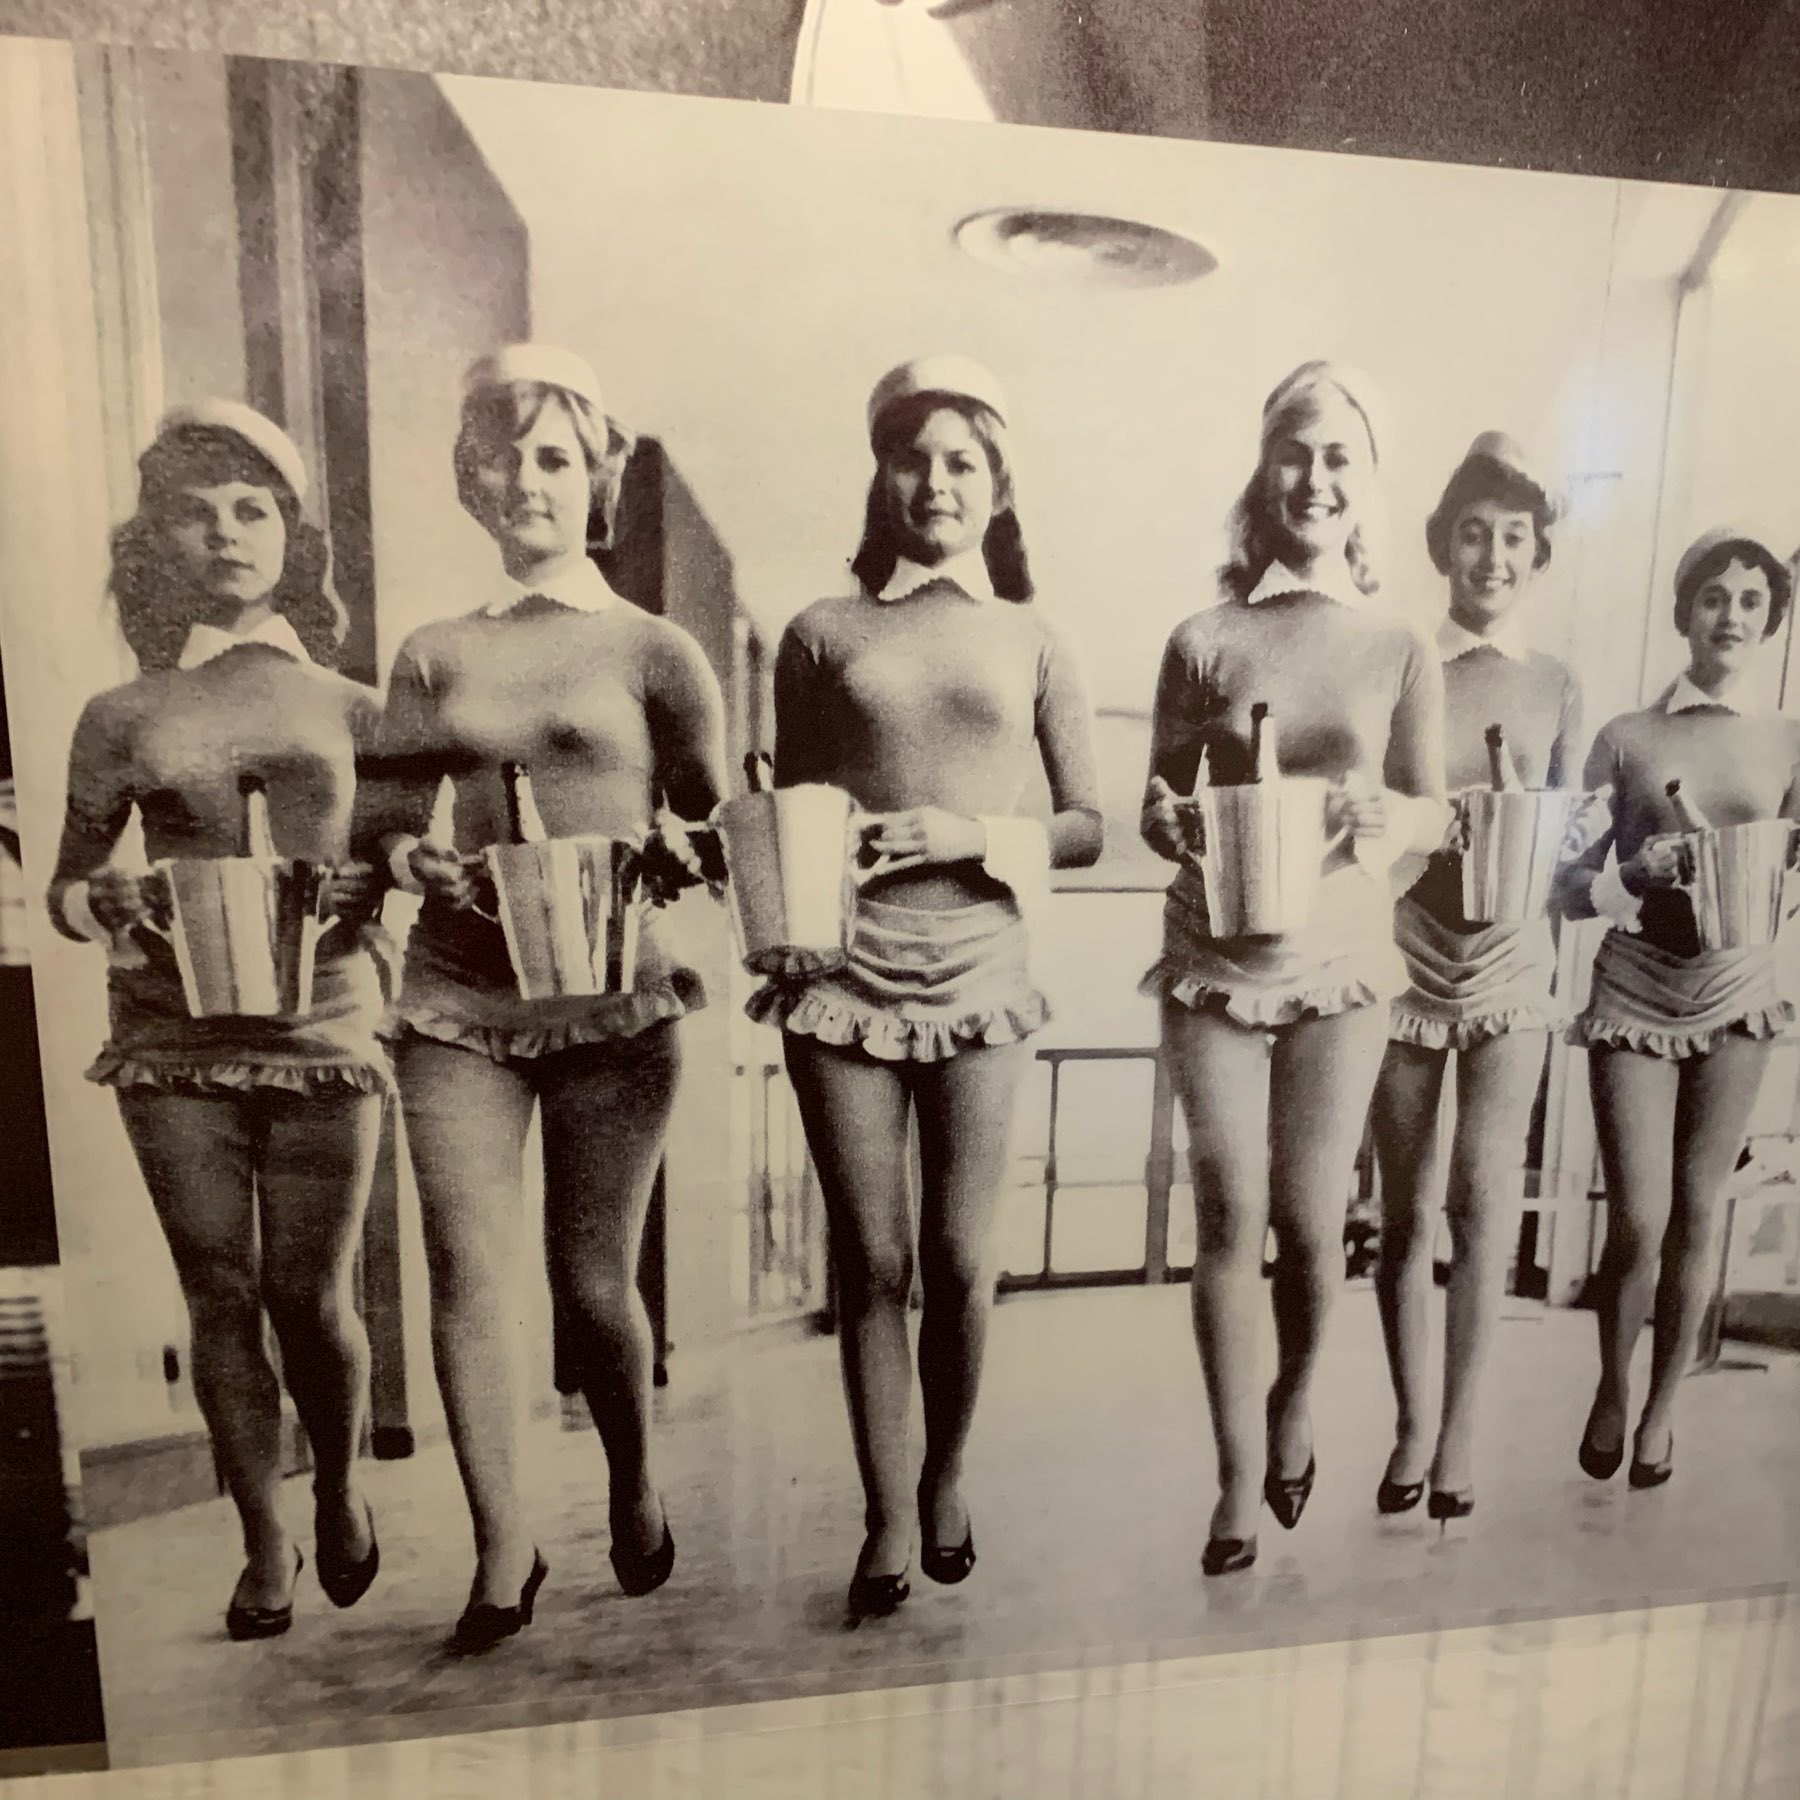 A photo of staff from the Berlin Intercontinental Hotel wearing a catsuit, maid's hats, and a skirt-like thing, all carrying buckets with bottles of champaign